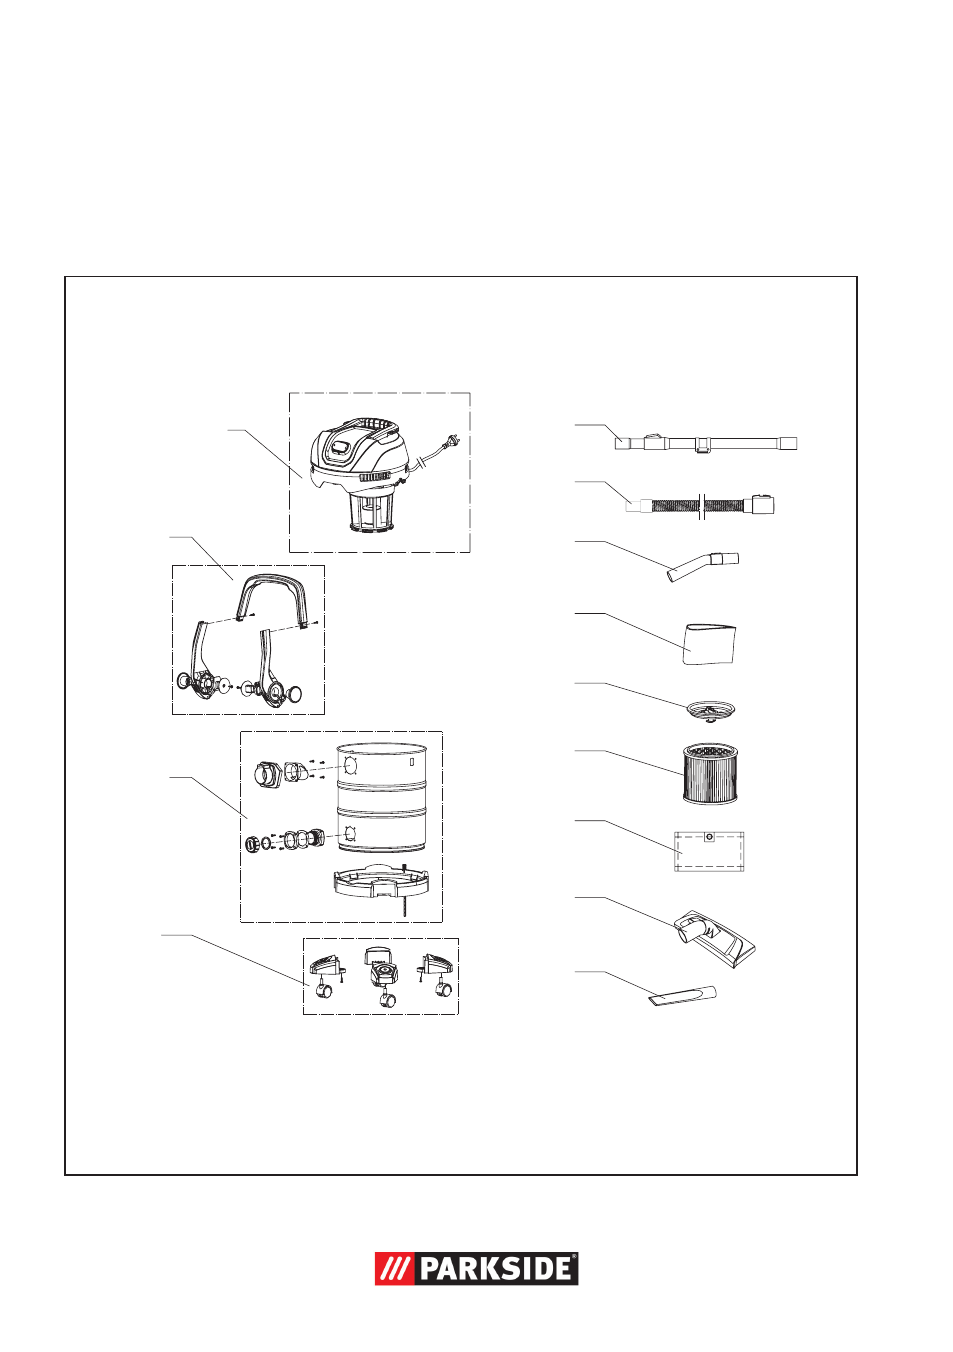 Parkside Pnts 1400 D1 User Manual Page 87 88 Also For Pnts